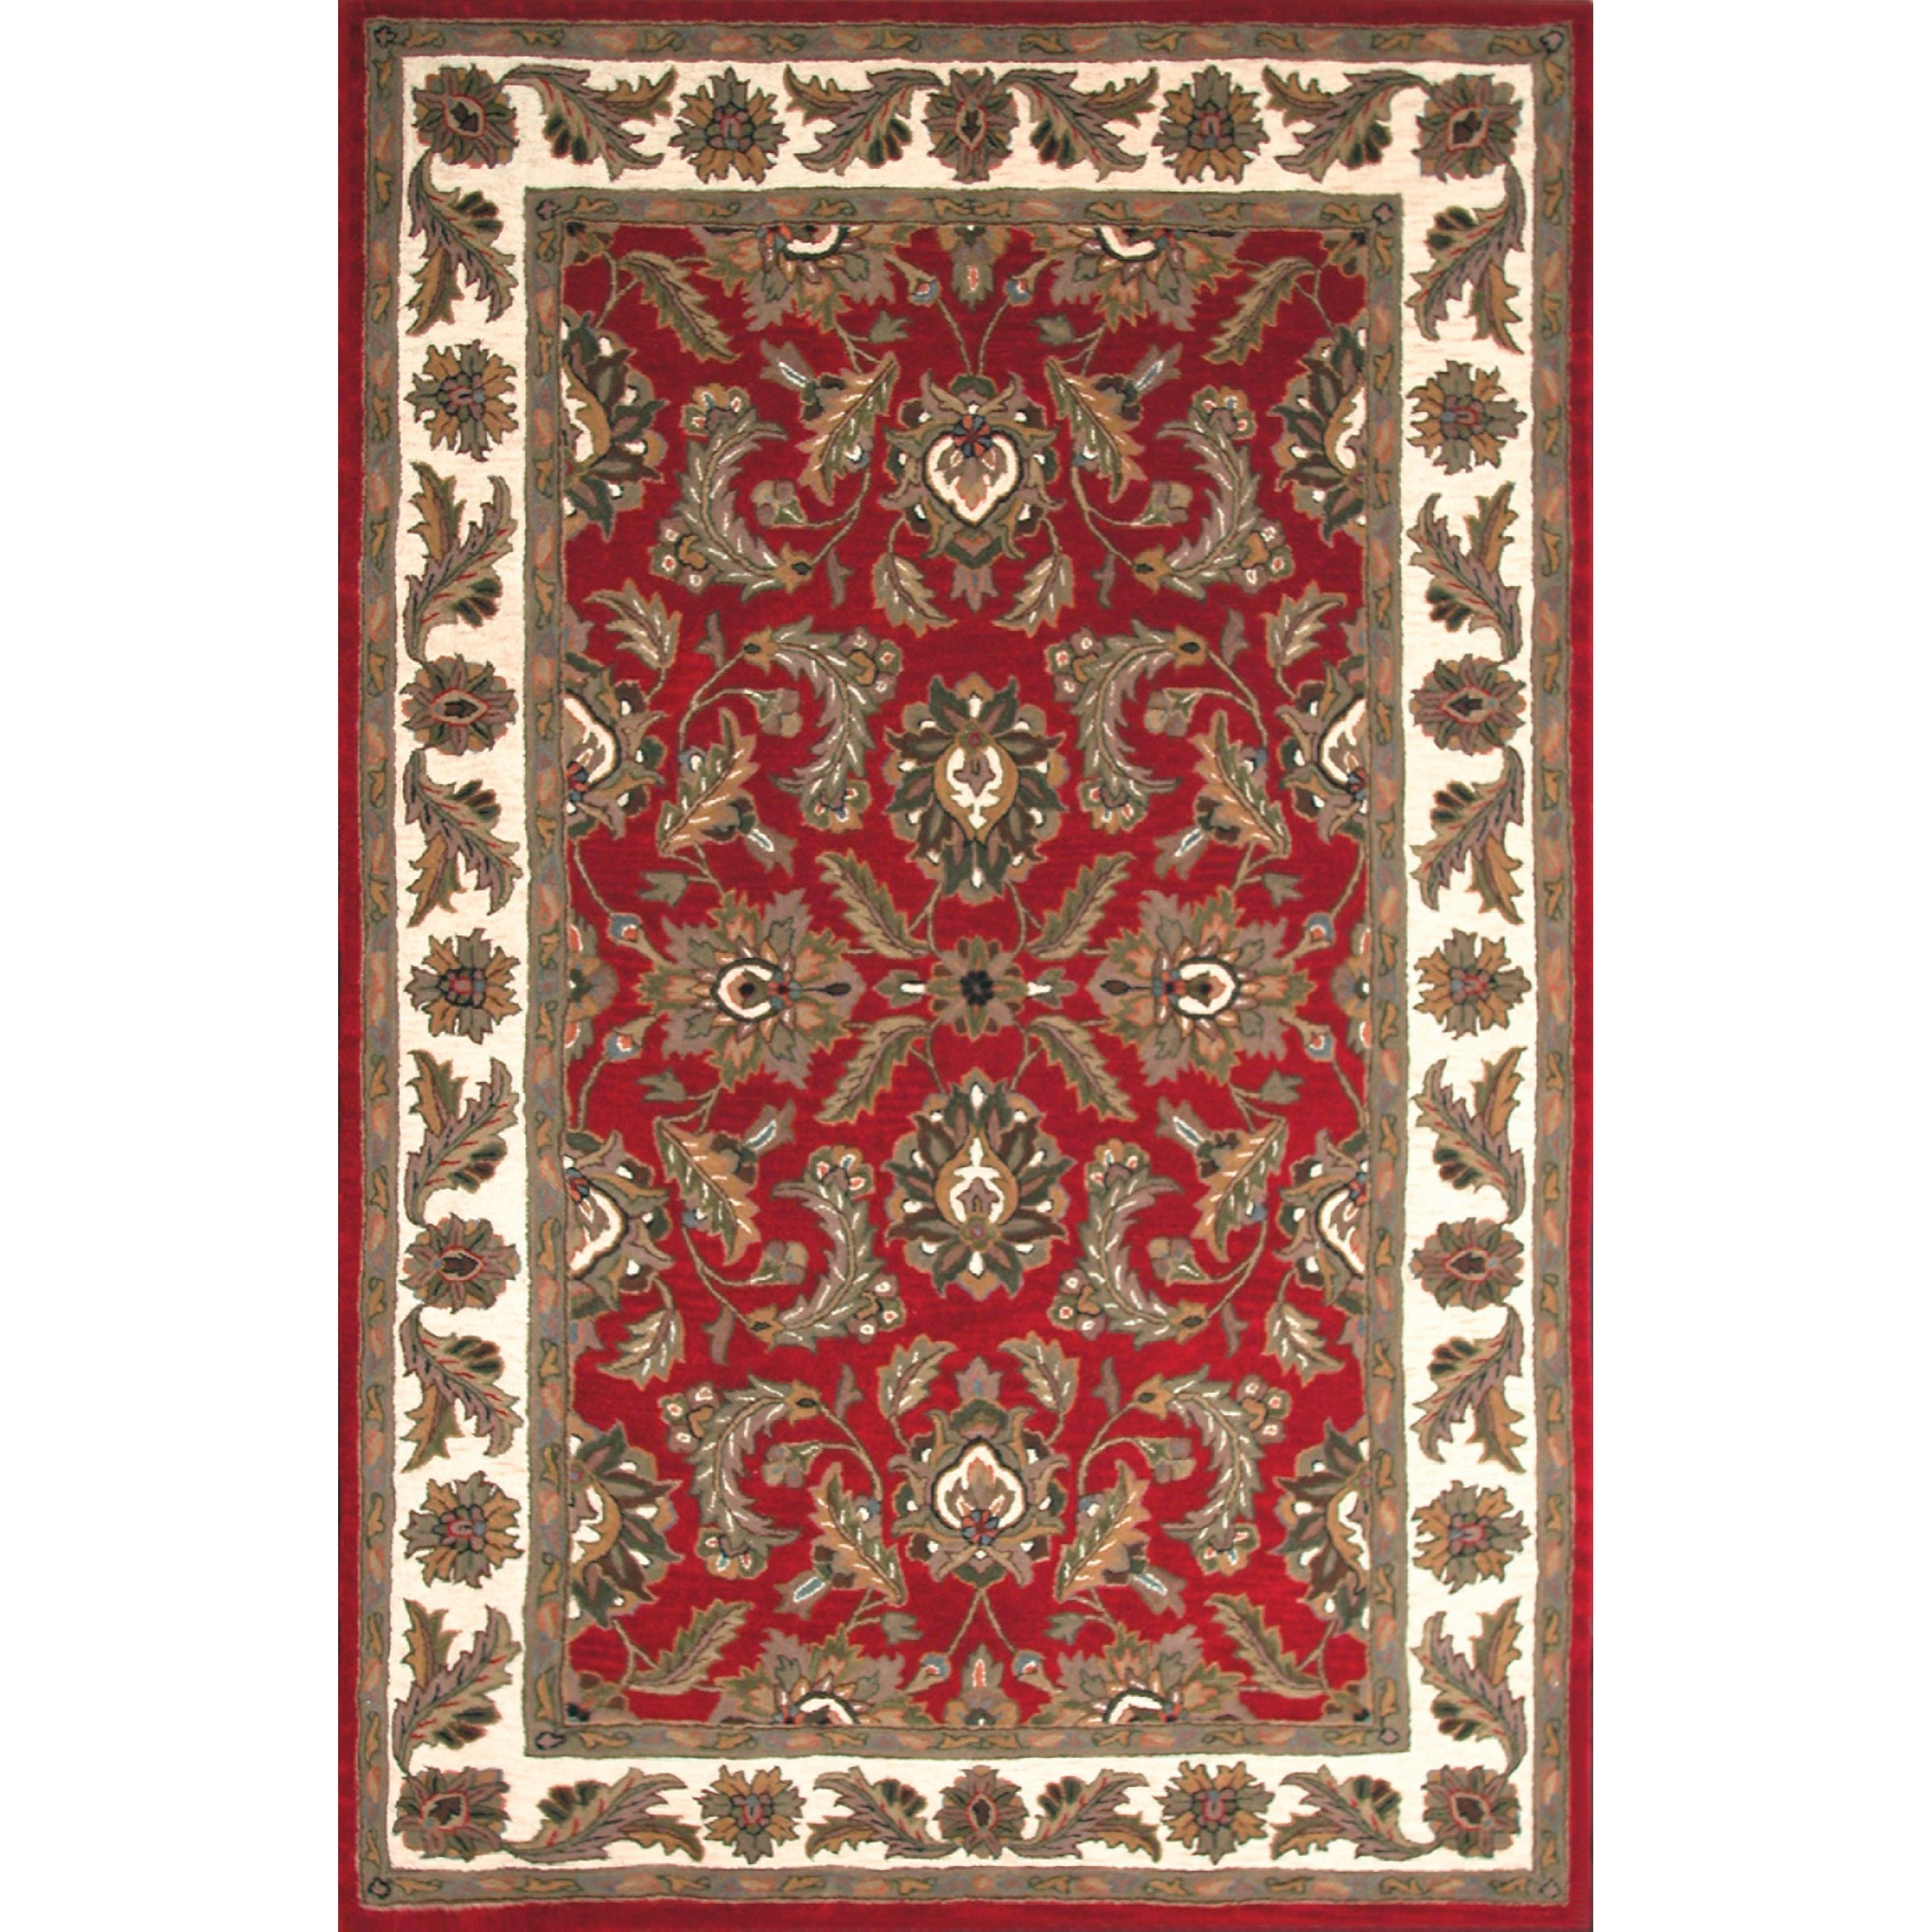 Dalyn Jewel Red 5'X8' Rug - Item Number: JW10RD5X8